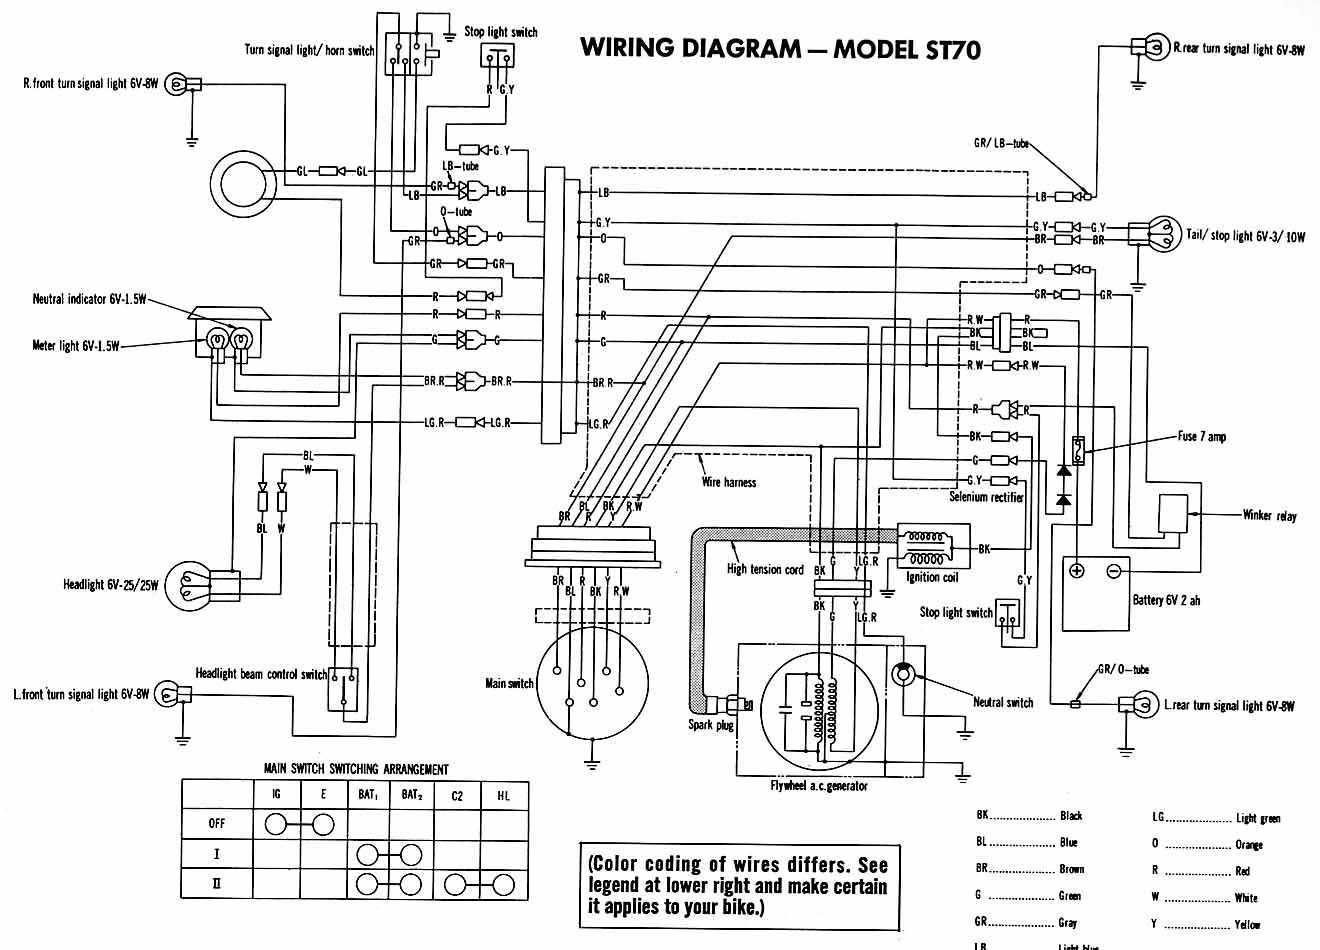 Free Honda Scooter Wiring Diagram Circuit And Hub C70 2004 Cr V Fuse Box Engine Image Stator